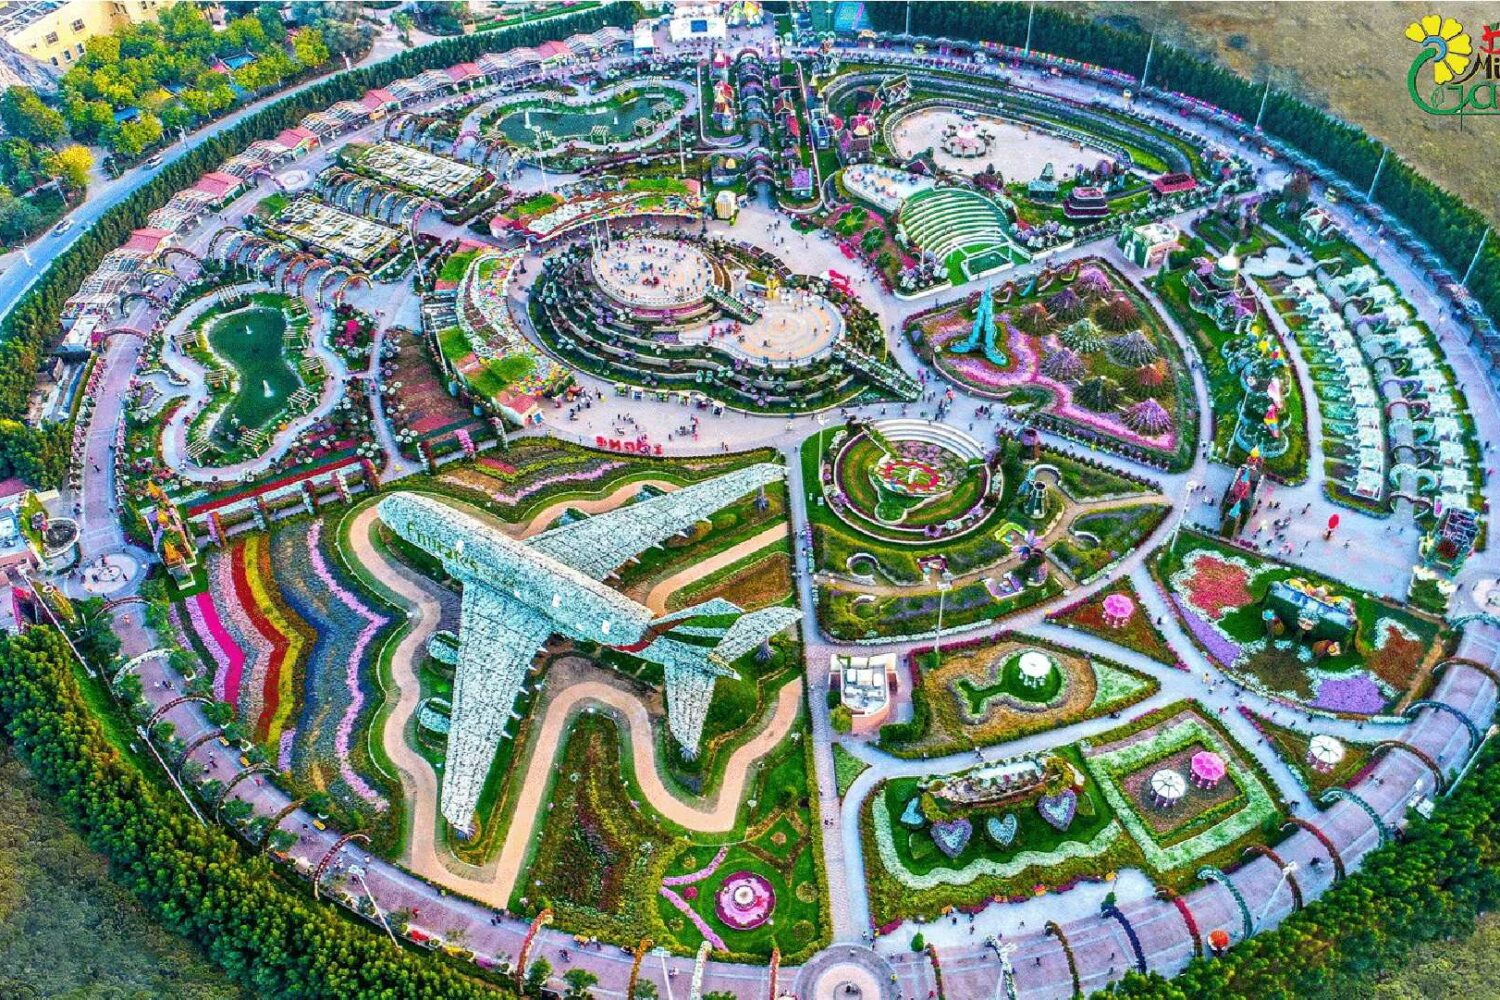 Miracle Garden and Global Village